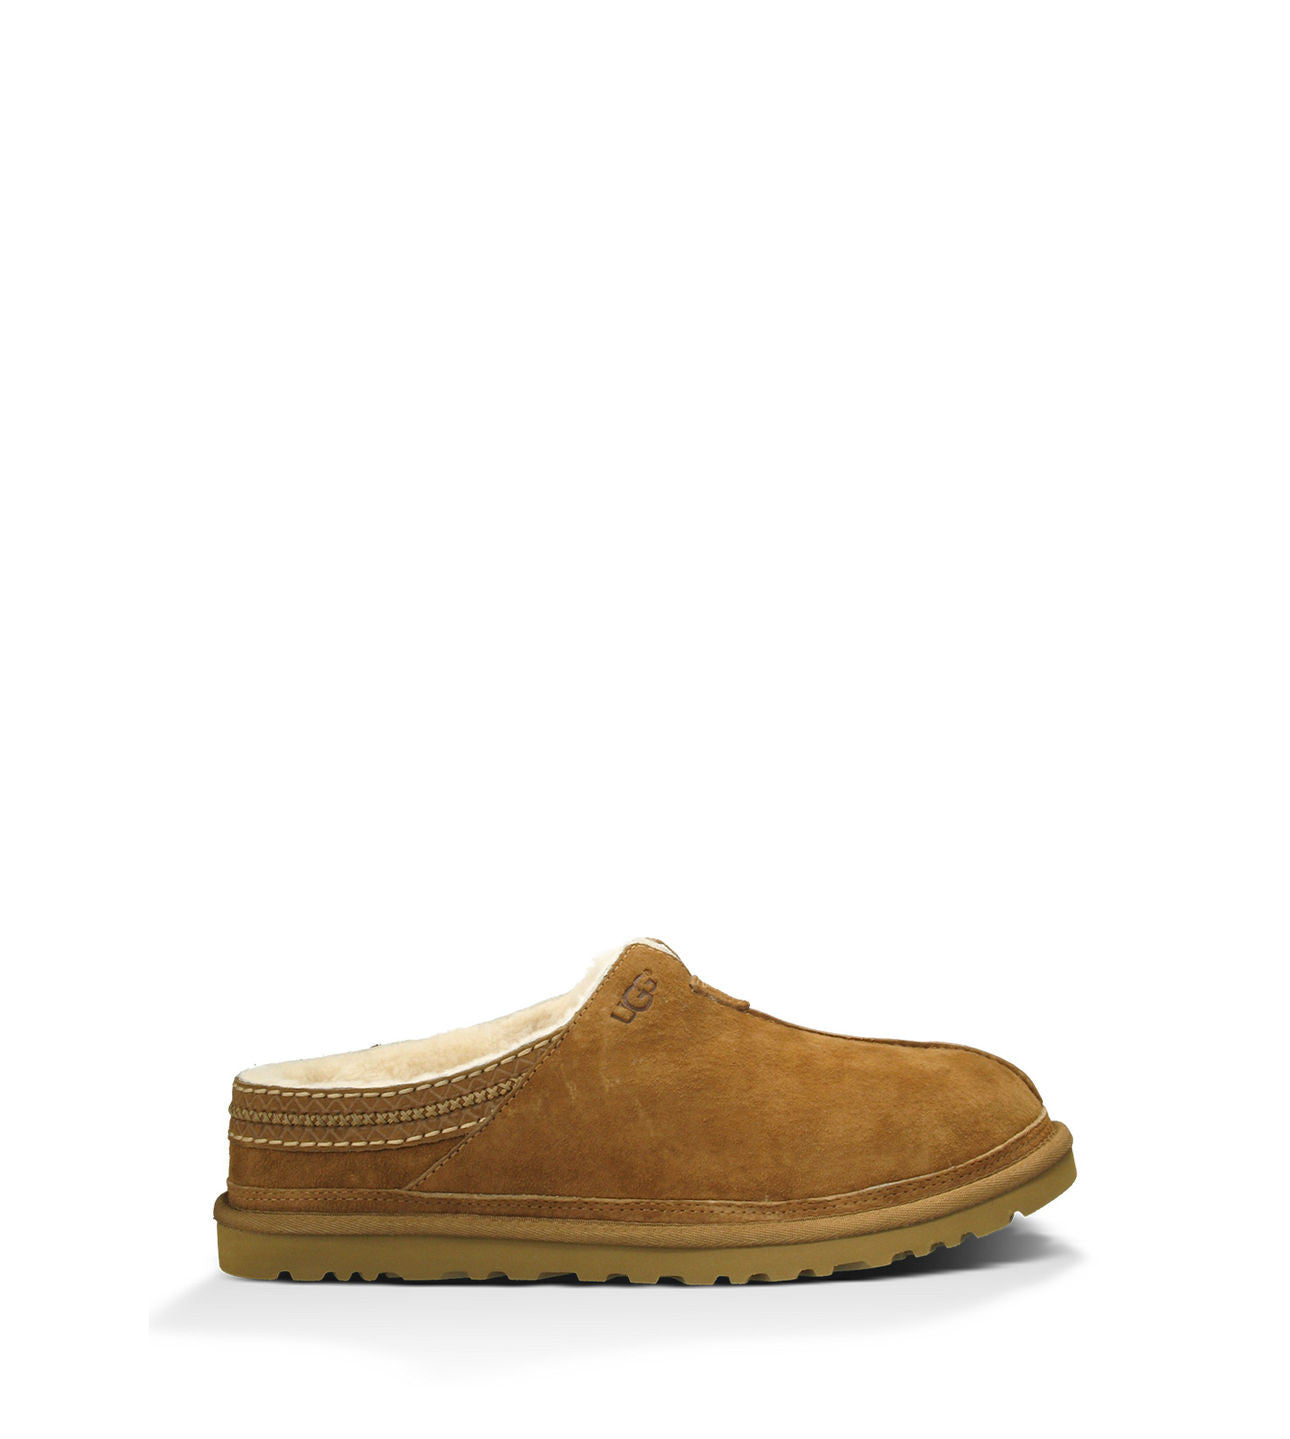 UGG Australia Men Neuman in Chestnut